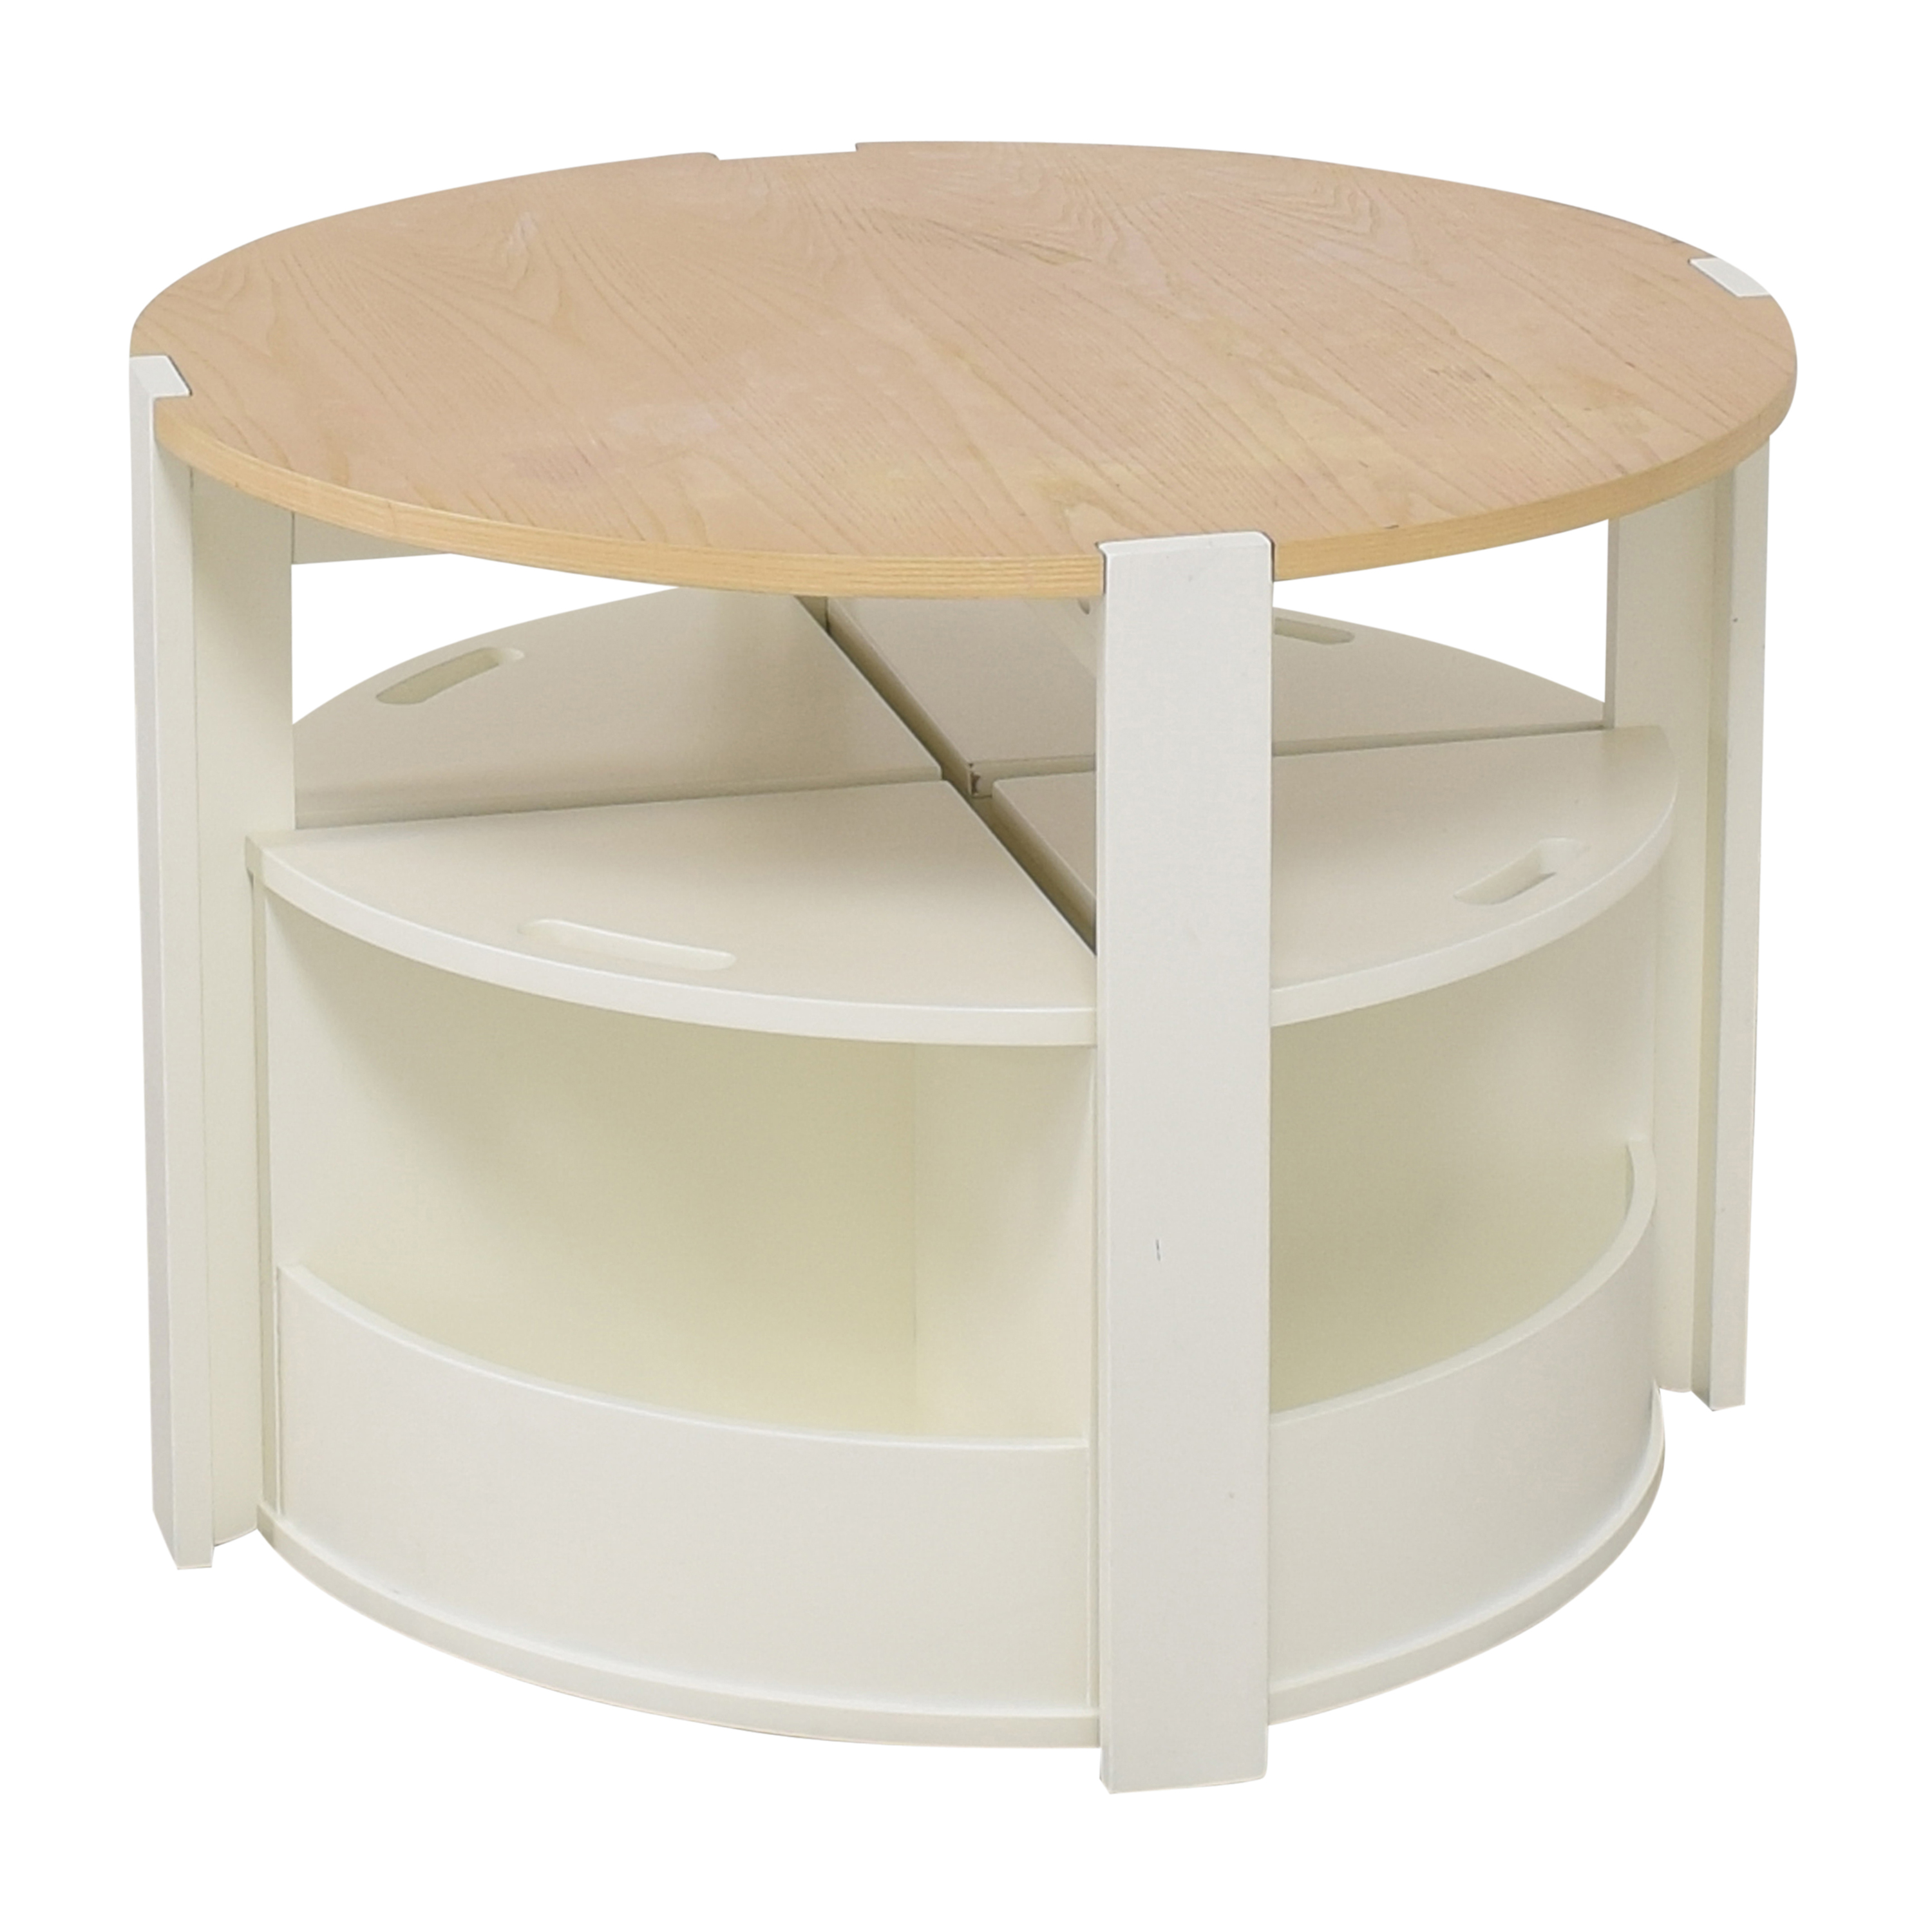 Crate & Barrel Crate & Barrel Nesting Play Table and Chairs pa